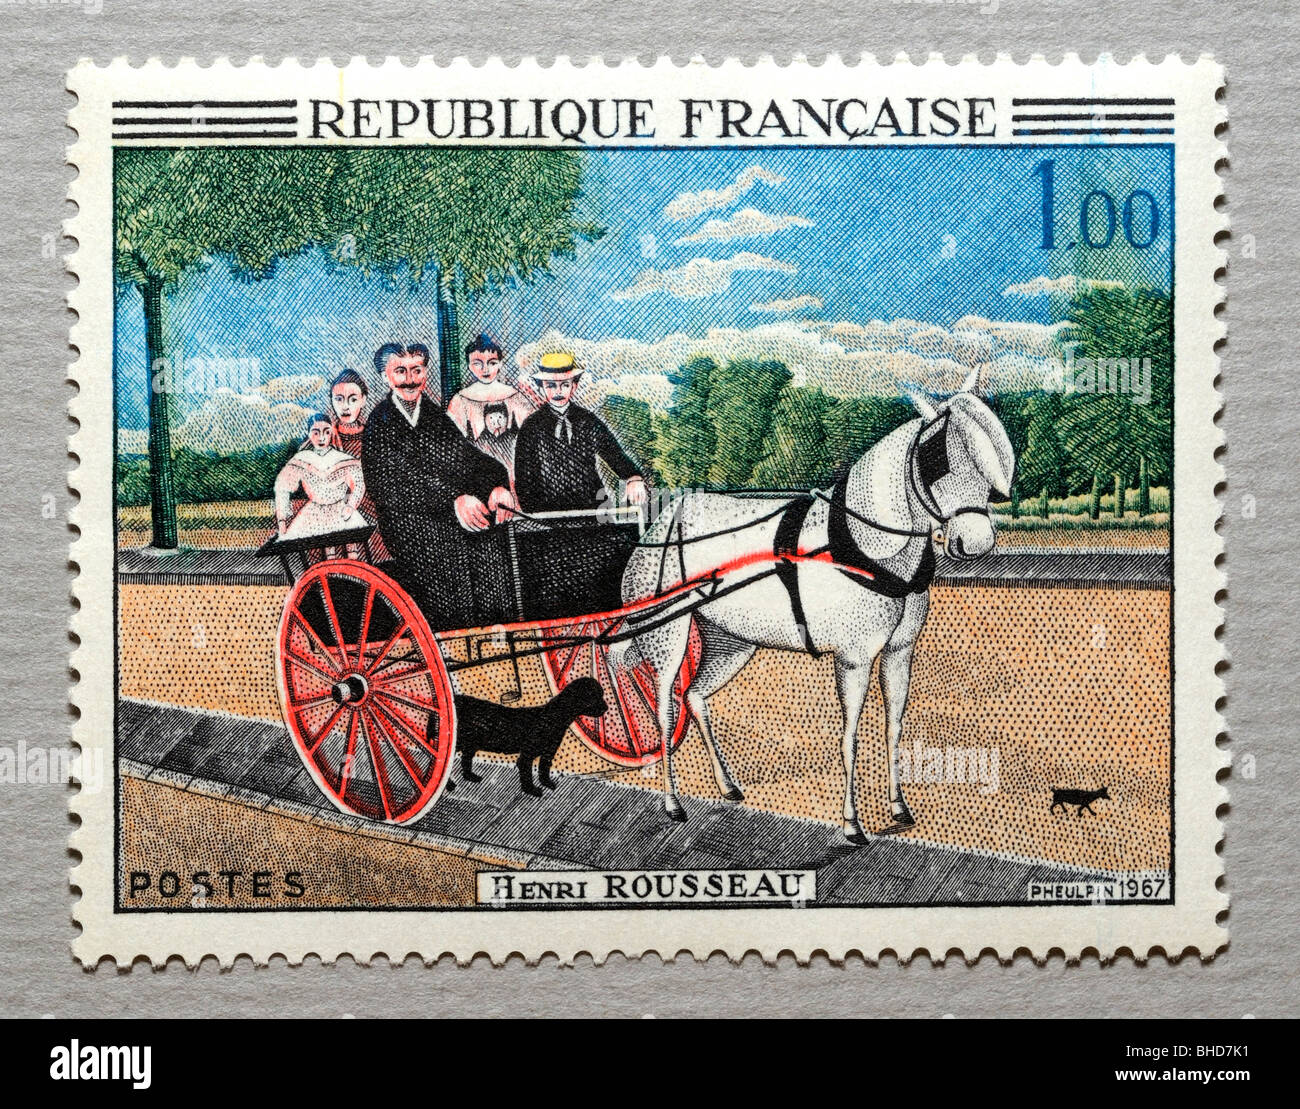 French Postage Stamp. - Stock Image